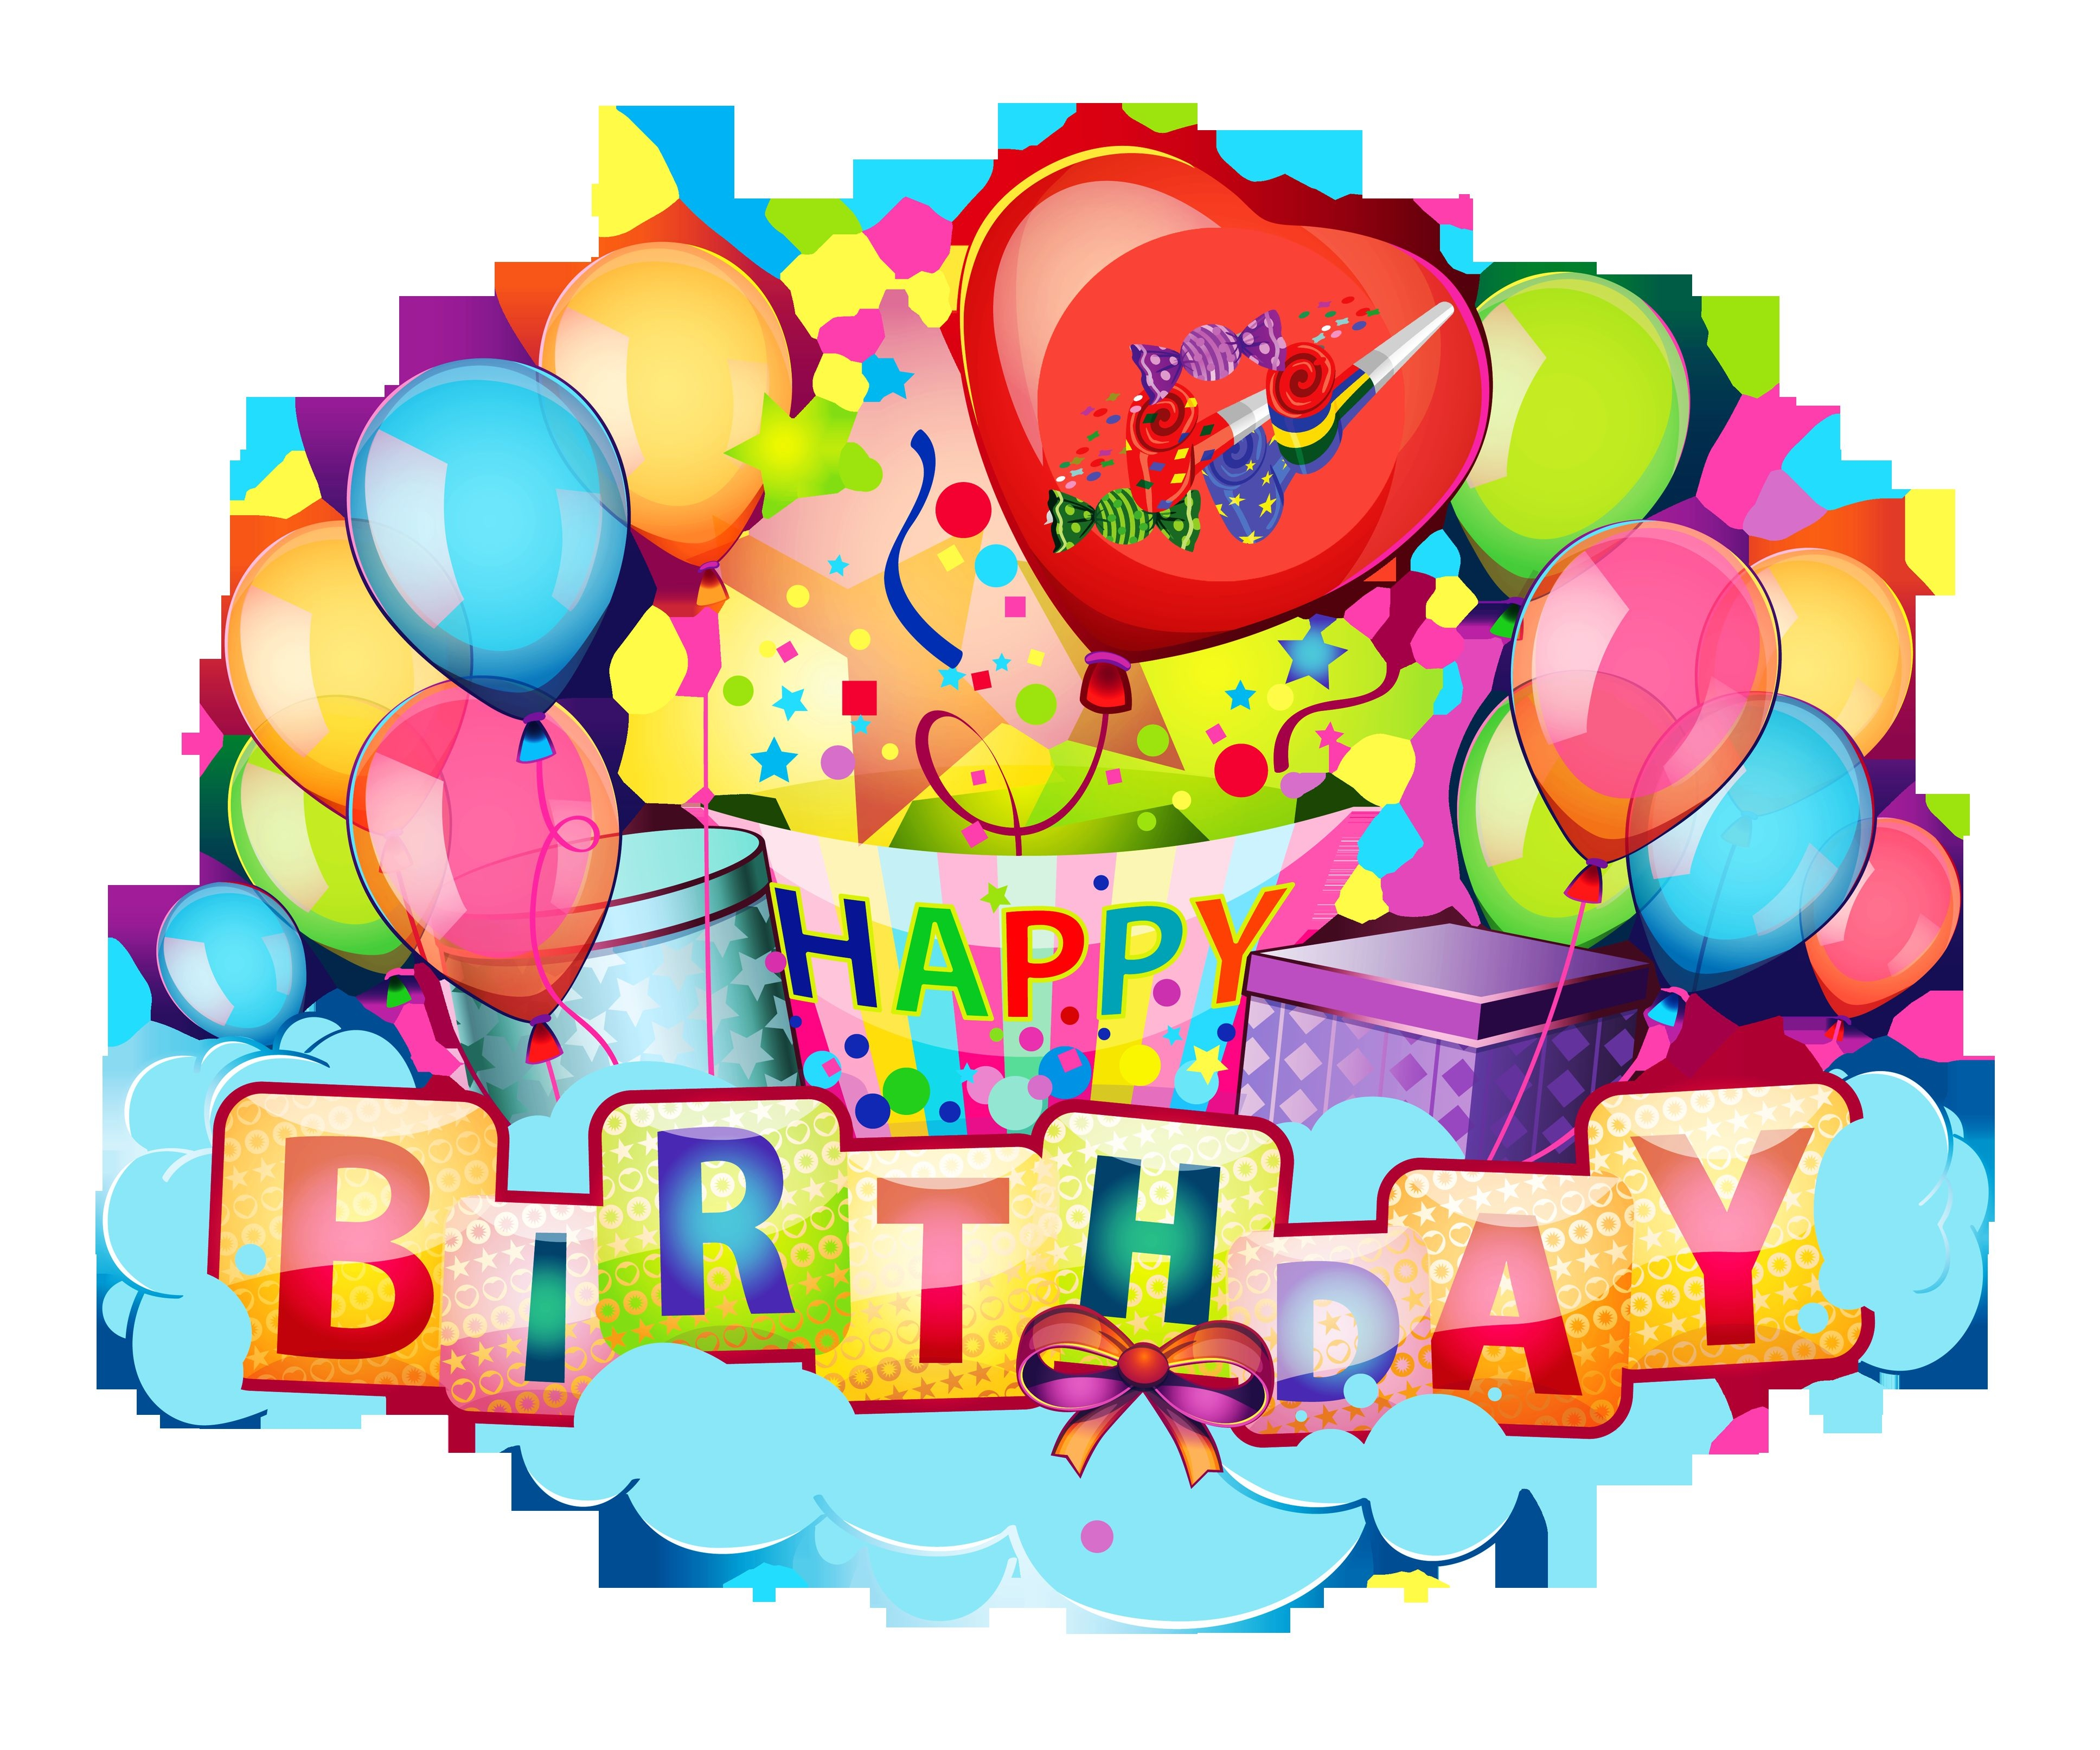 facebook clipart birthday ; birthday%2520clipart%2520for%2520facebook%2520;%2520Happy-birthday-clipart-for-facebook